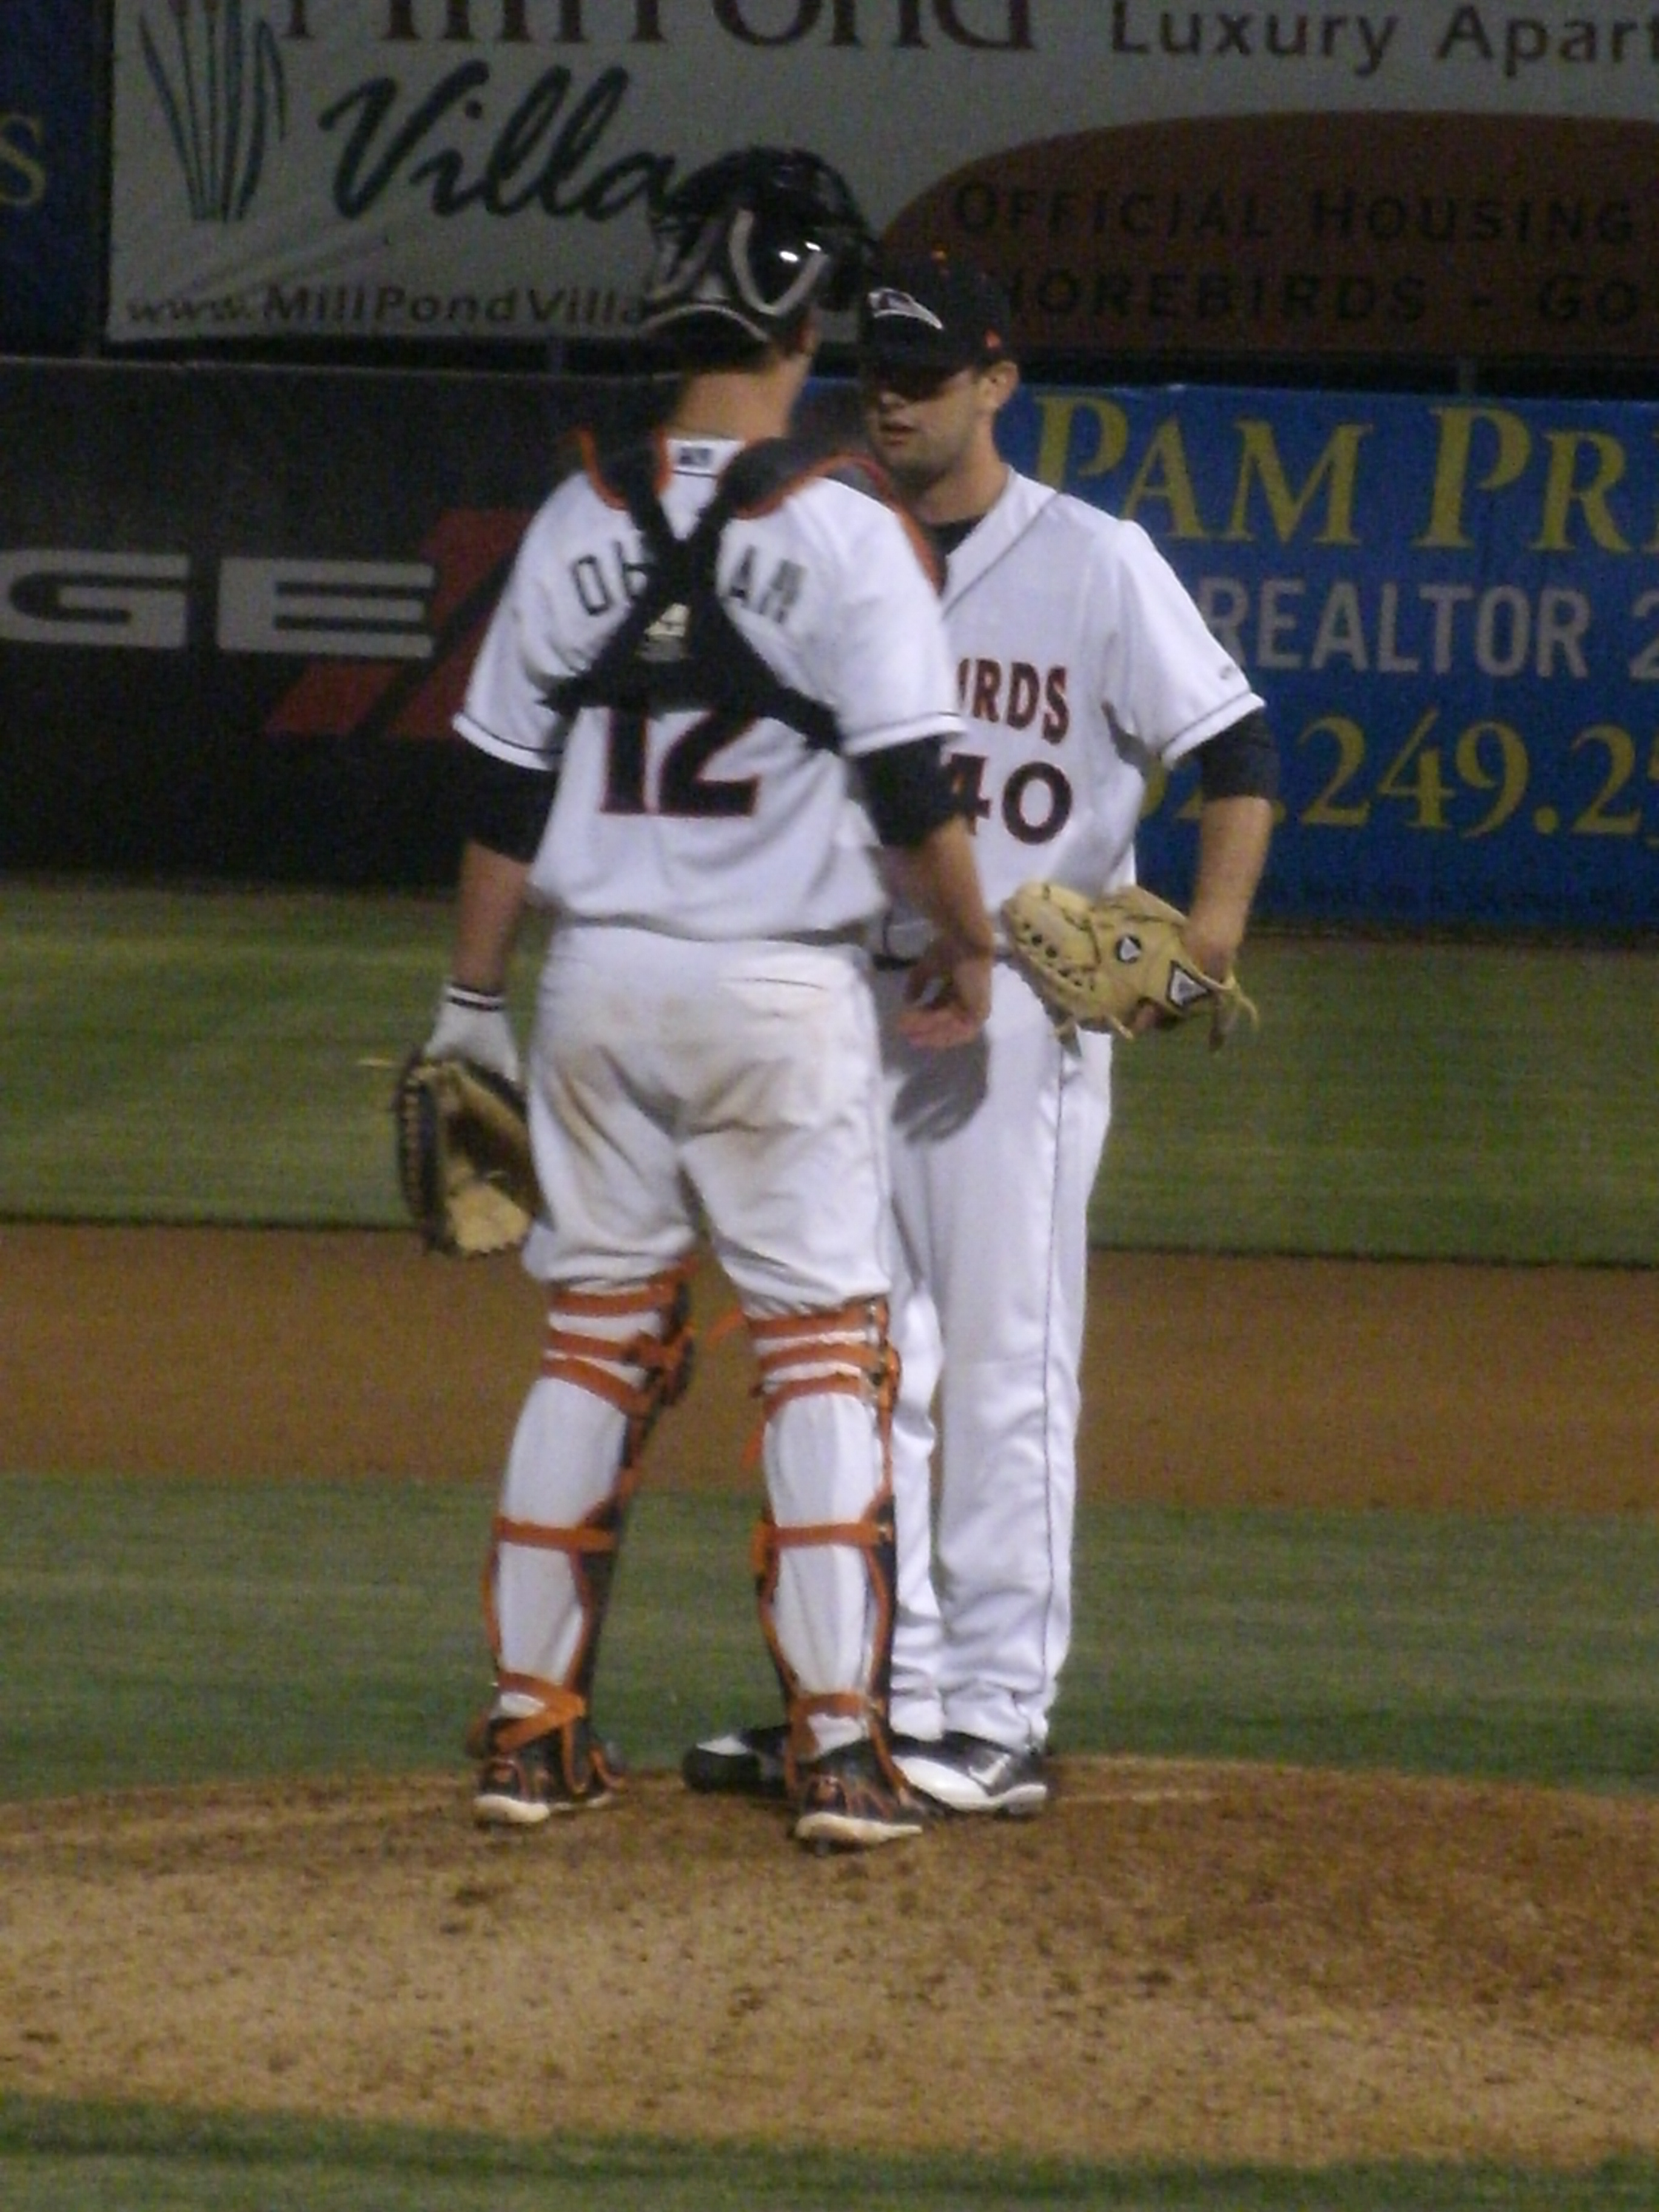 David Walters is instructed by catcher Michael Ohlman before taking the mound and earning the save against Savannah April 27.